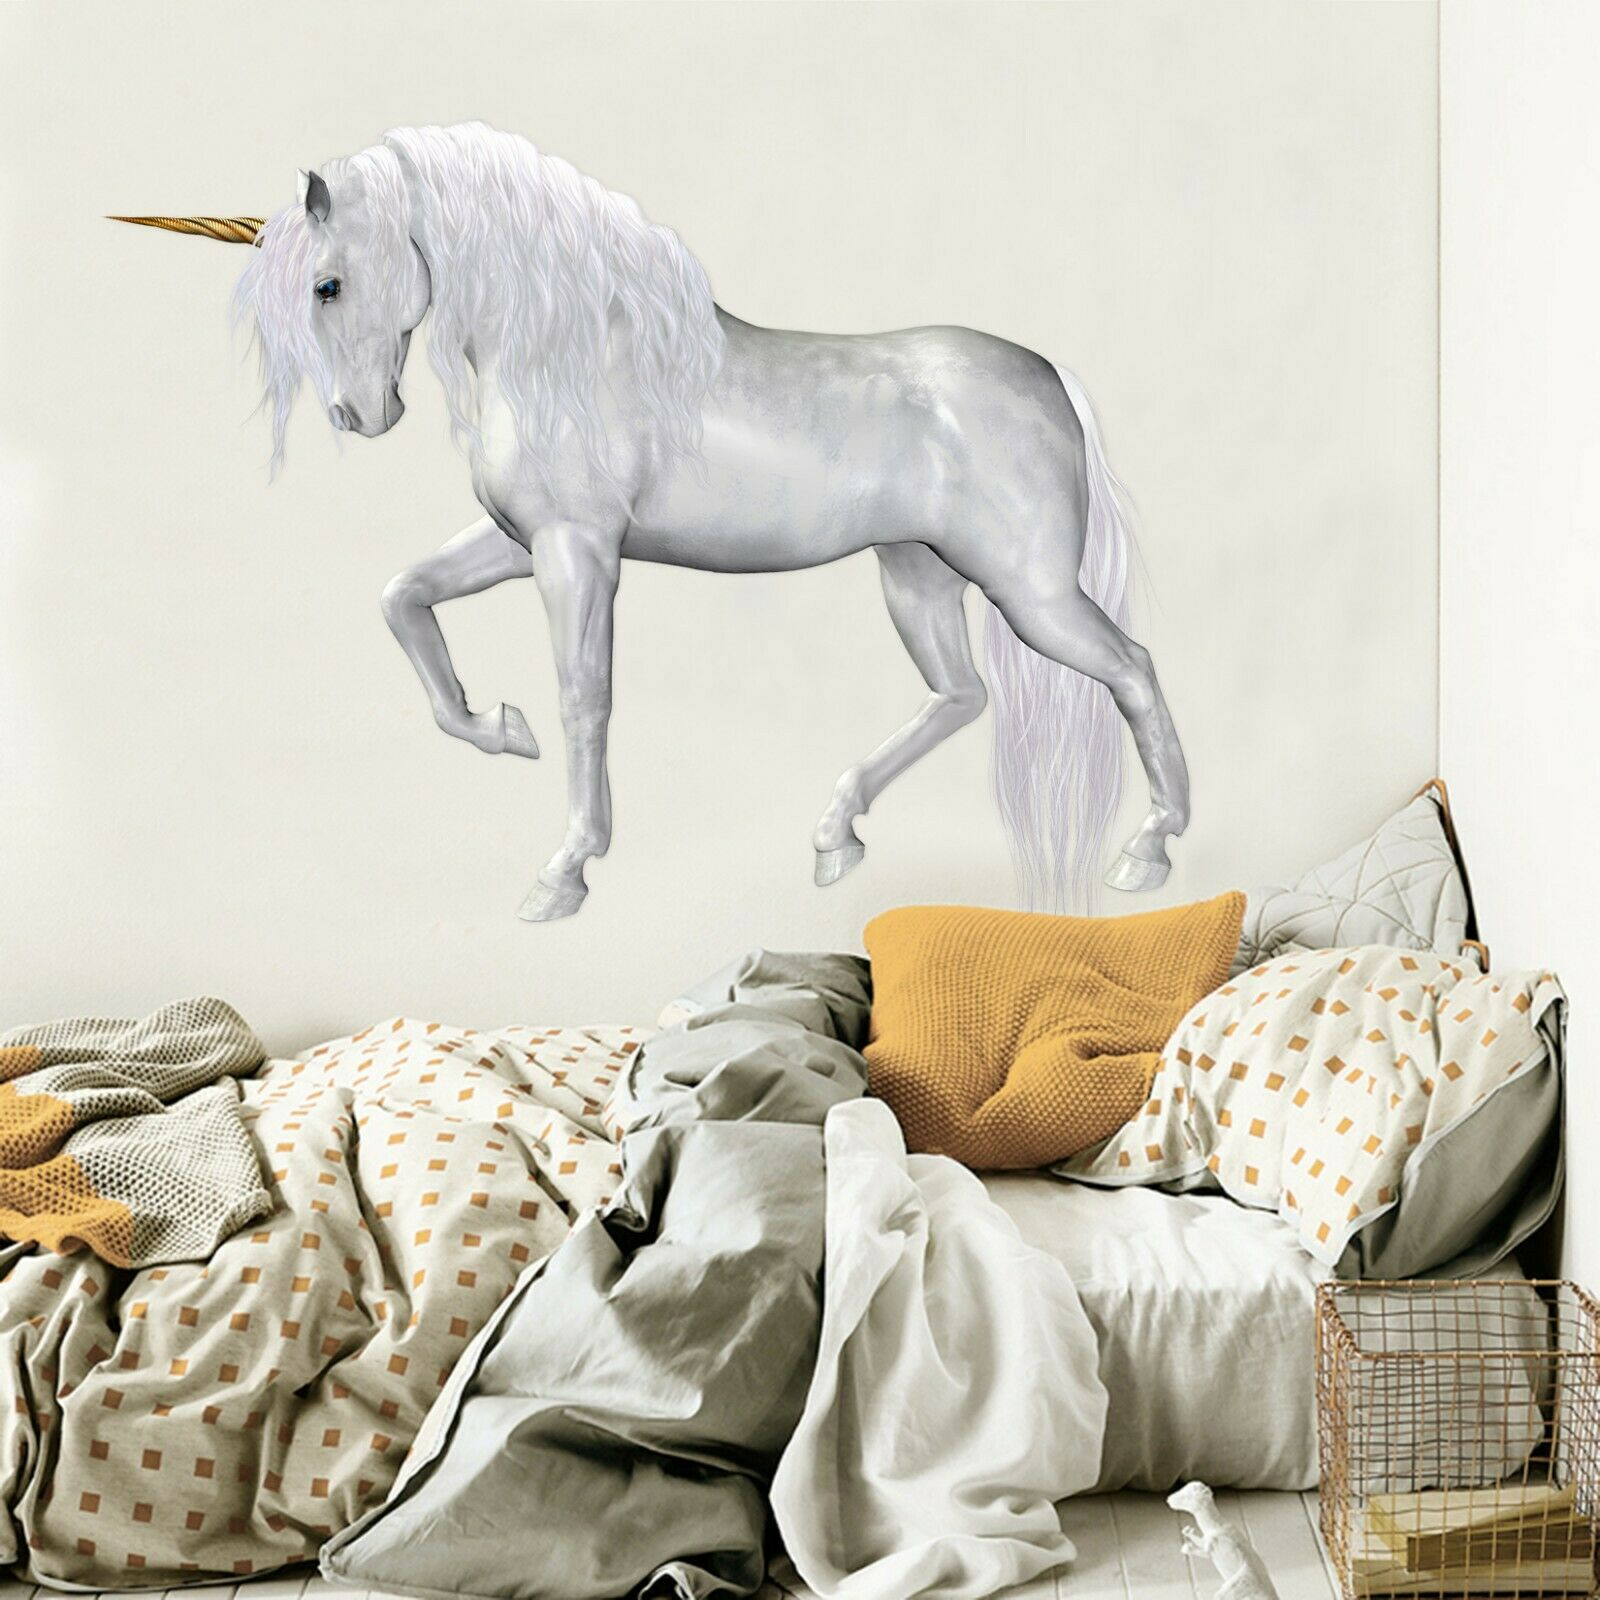 3D Elegant Unicorn P40 Animal WandPapier Mural Self-adhesive Removable Zoe